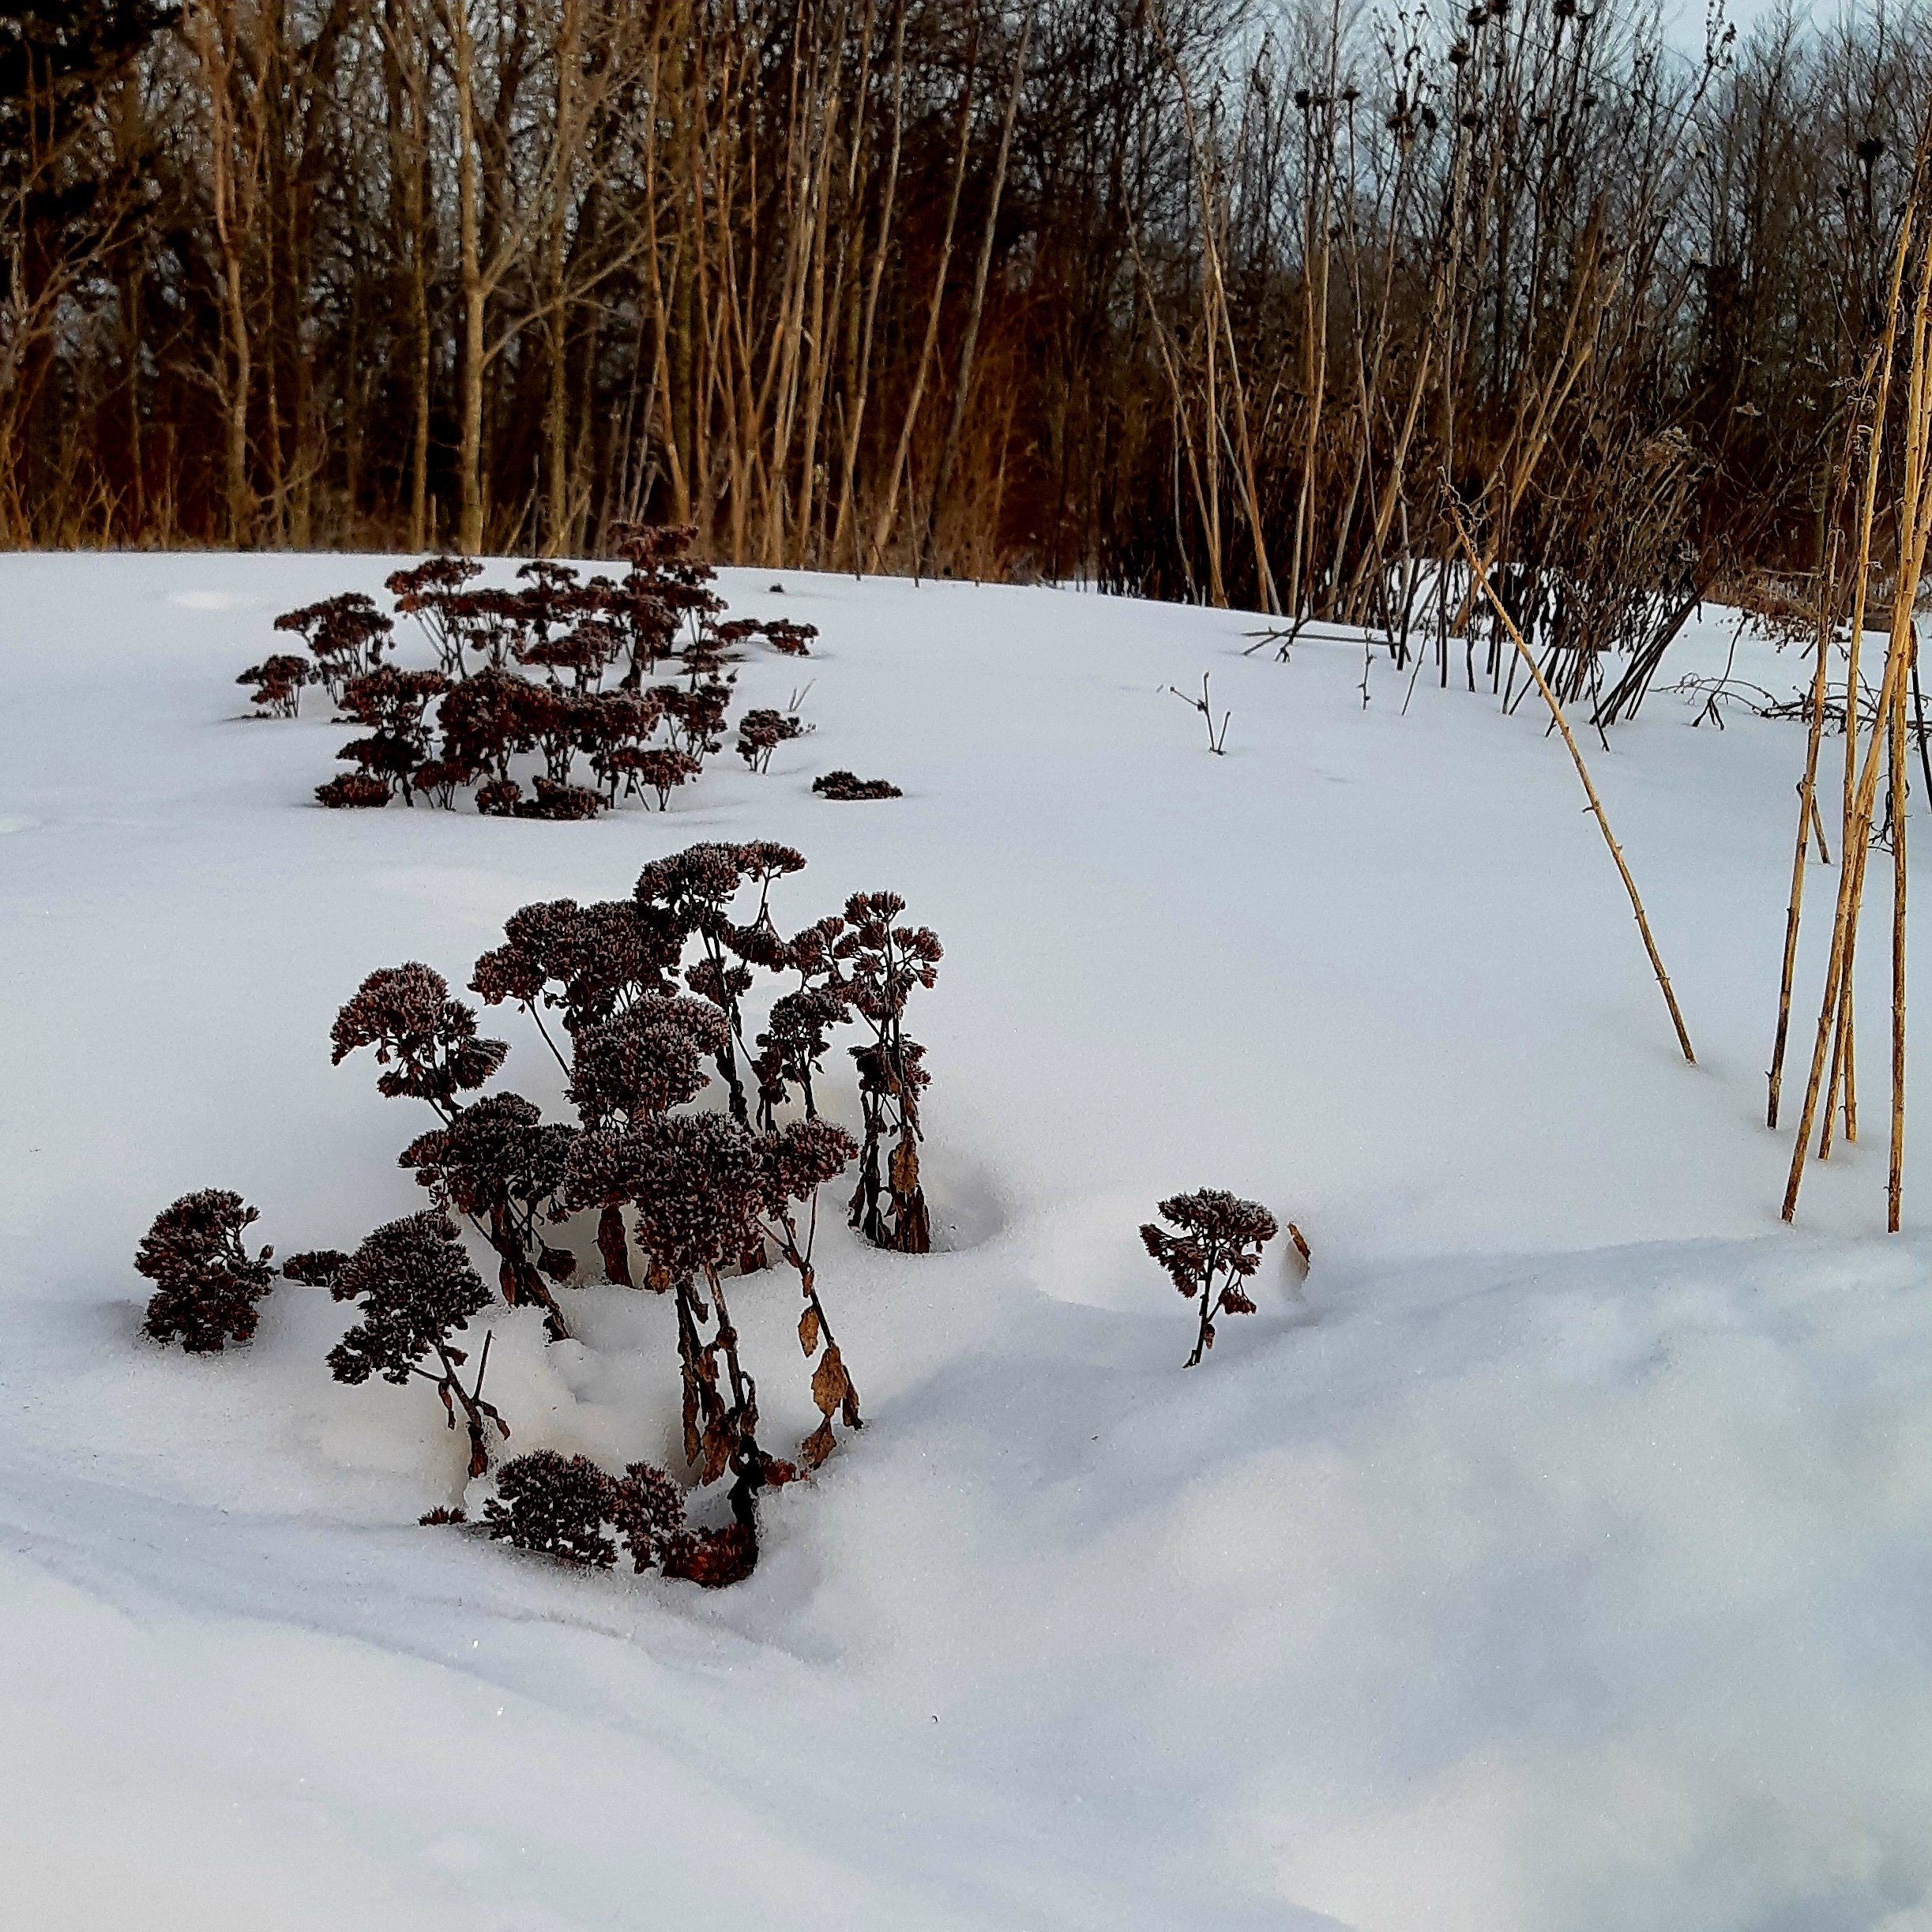 Sedum spectabile flower stalks sticking up through the snow